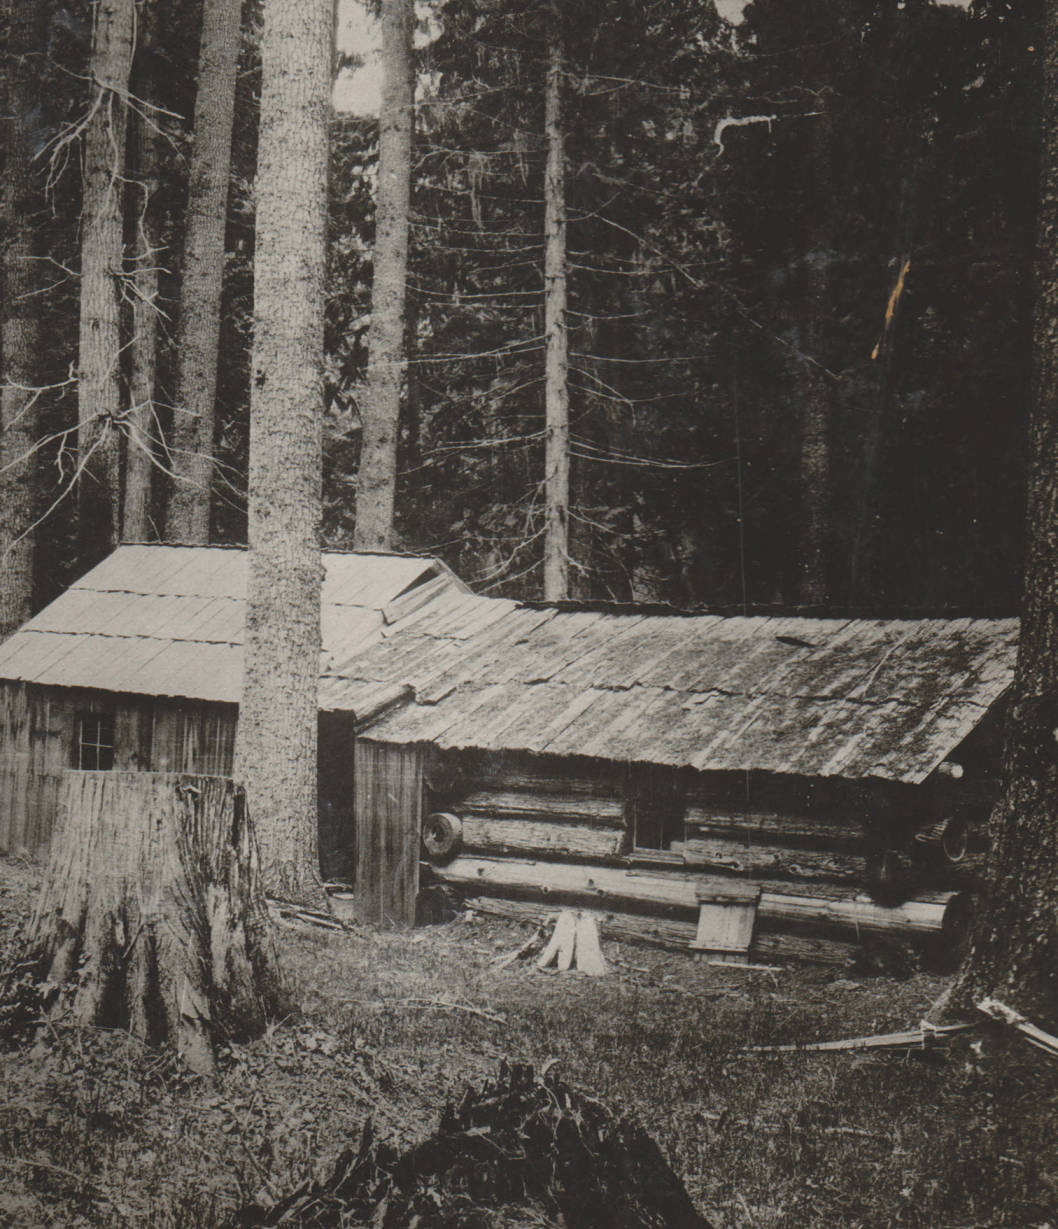 item thumbnail for Marble Creek homestead and cabin, possible false homestead claim